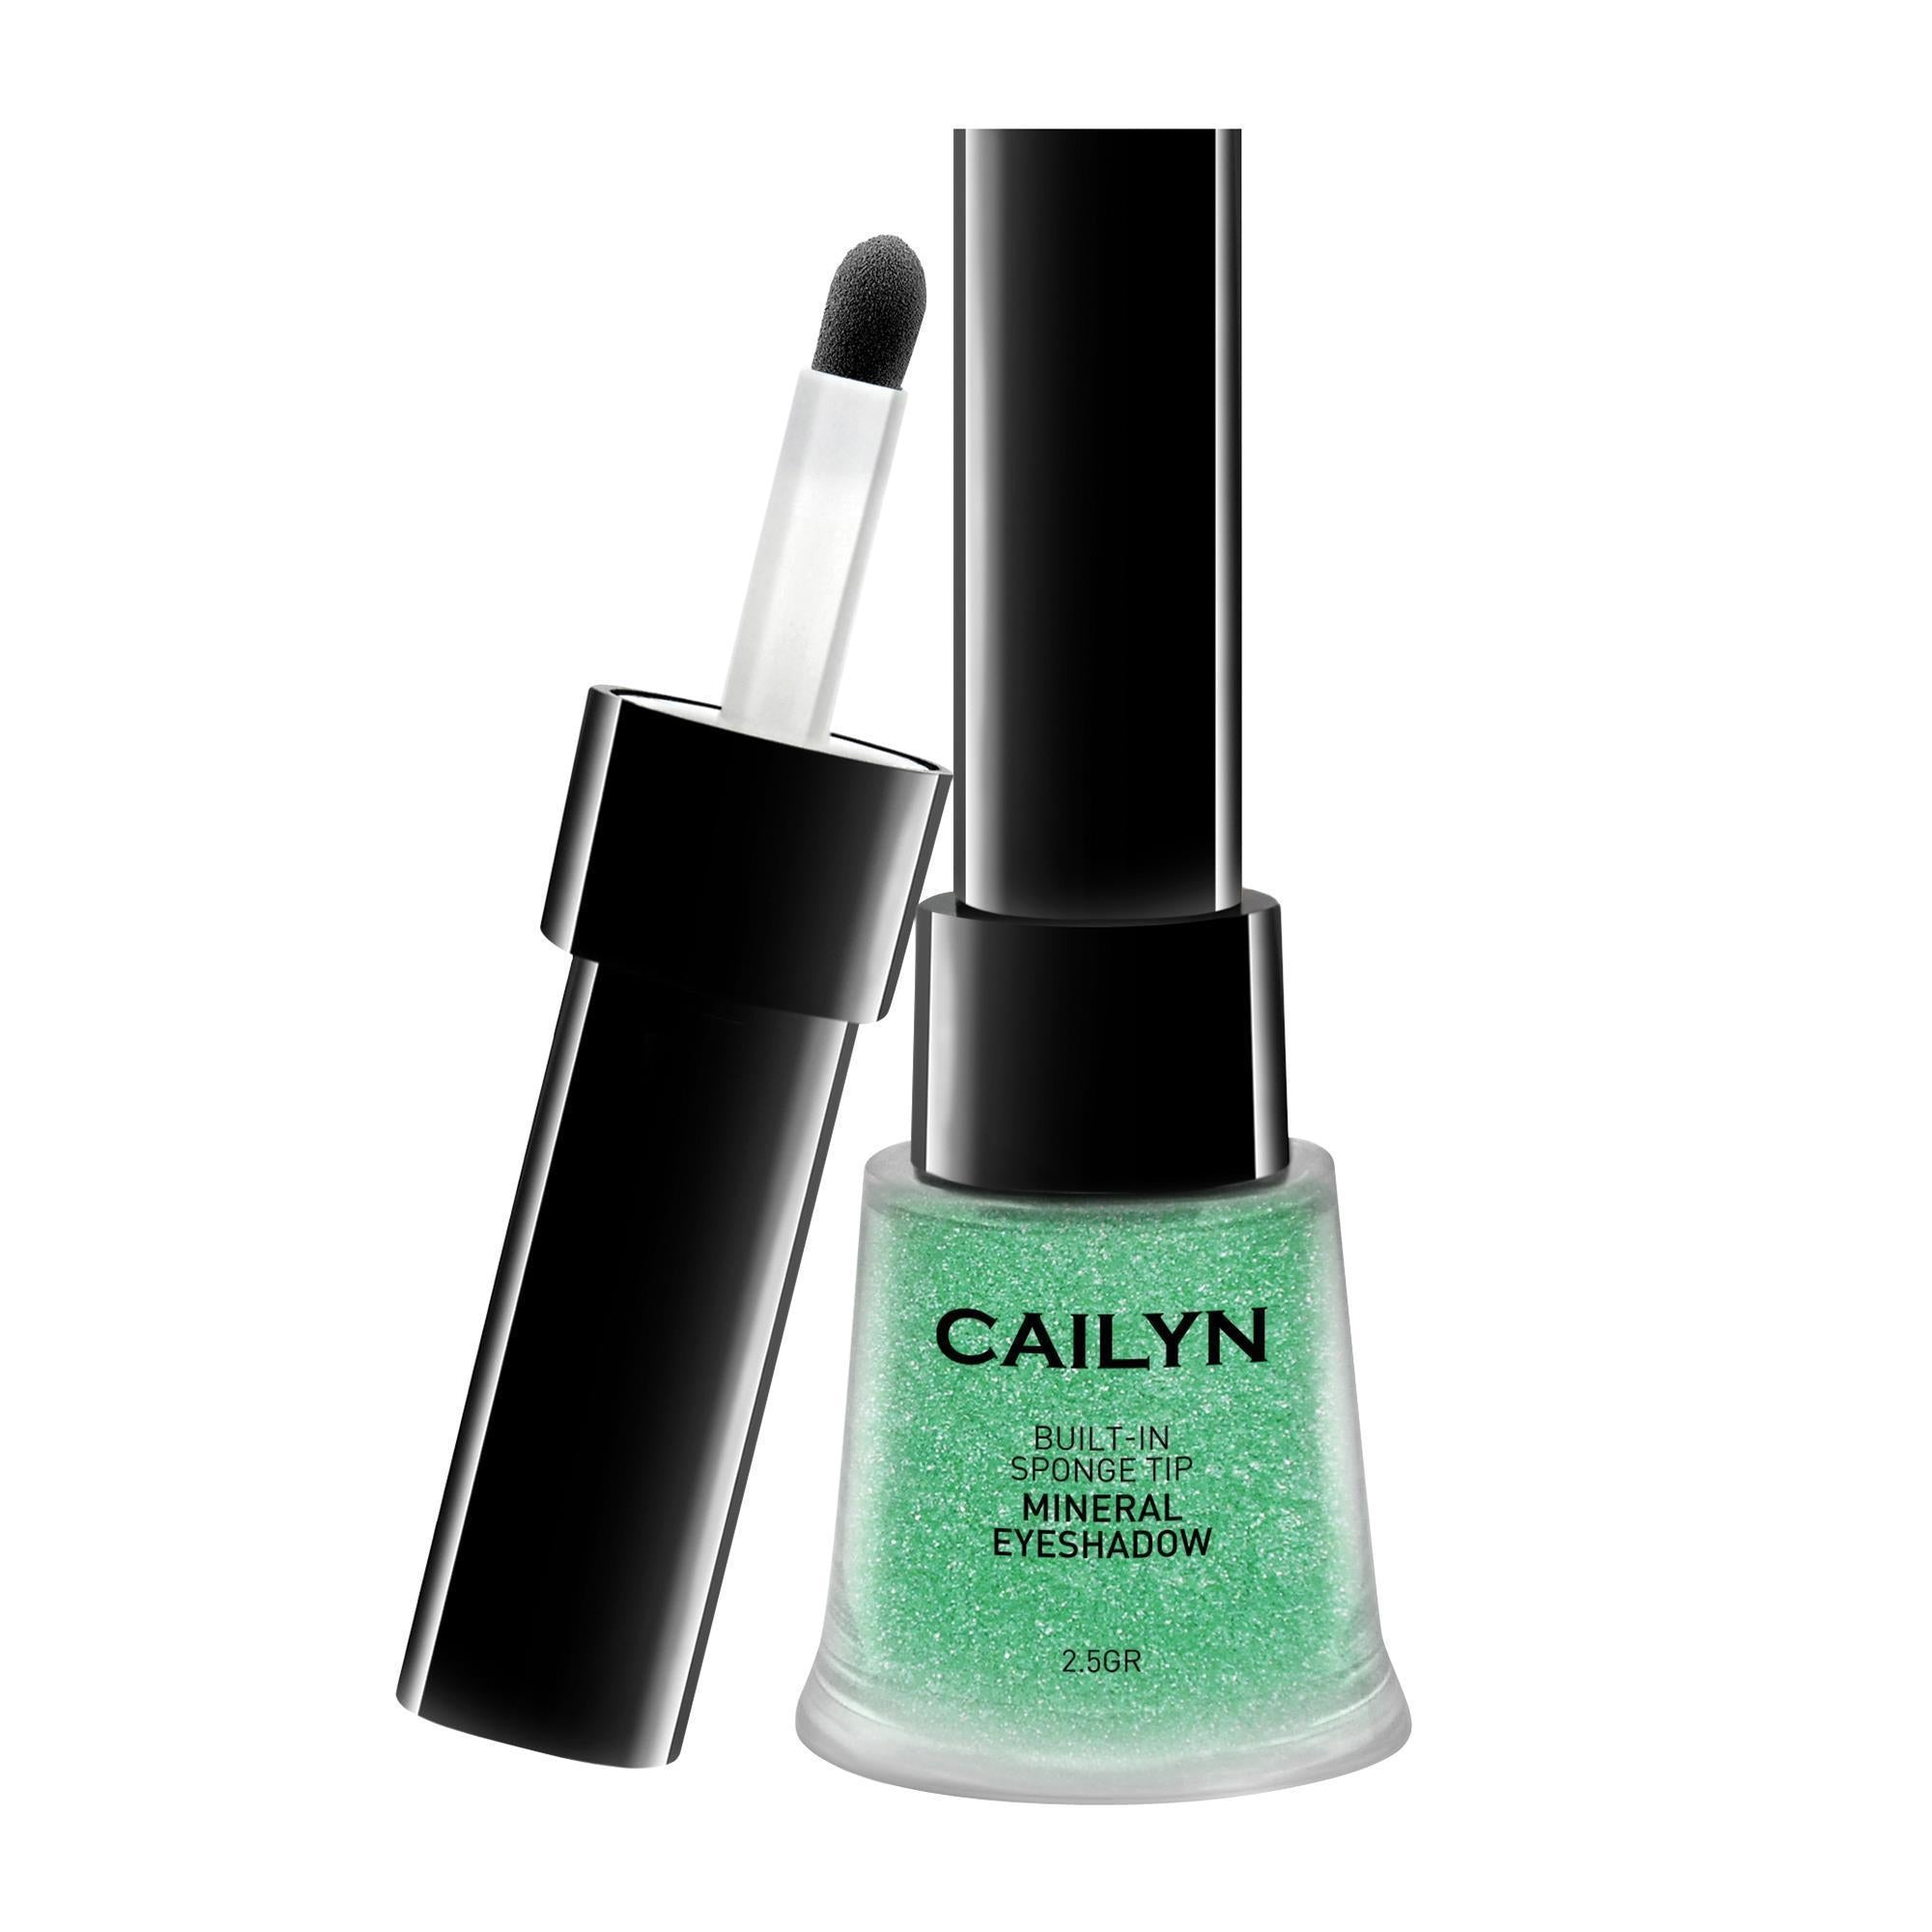 Makeup, Skin & Personal Care Ocean Cailyn Mineral Eye Polish / Built-In Sponge Tip